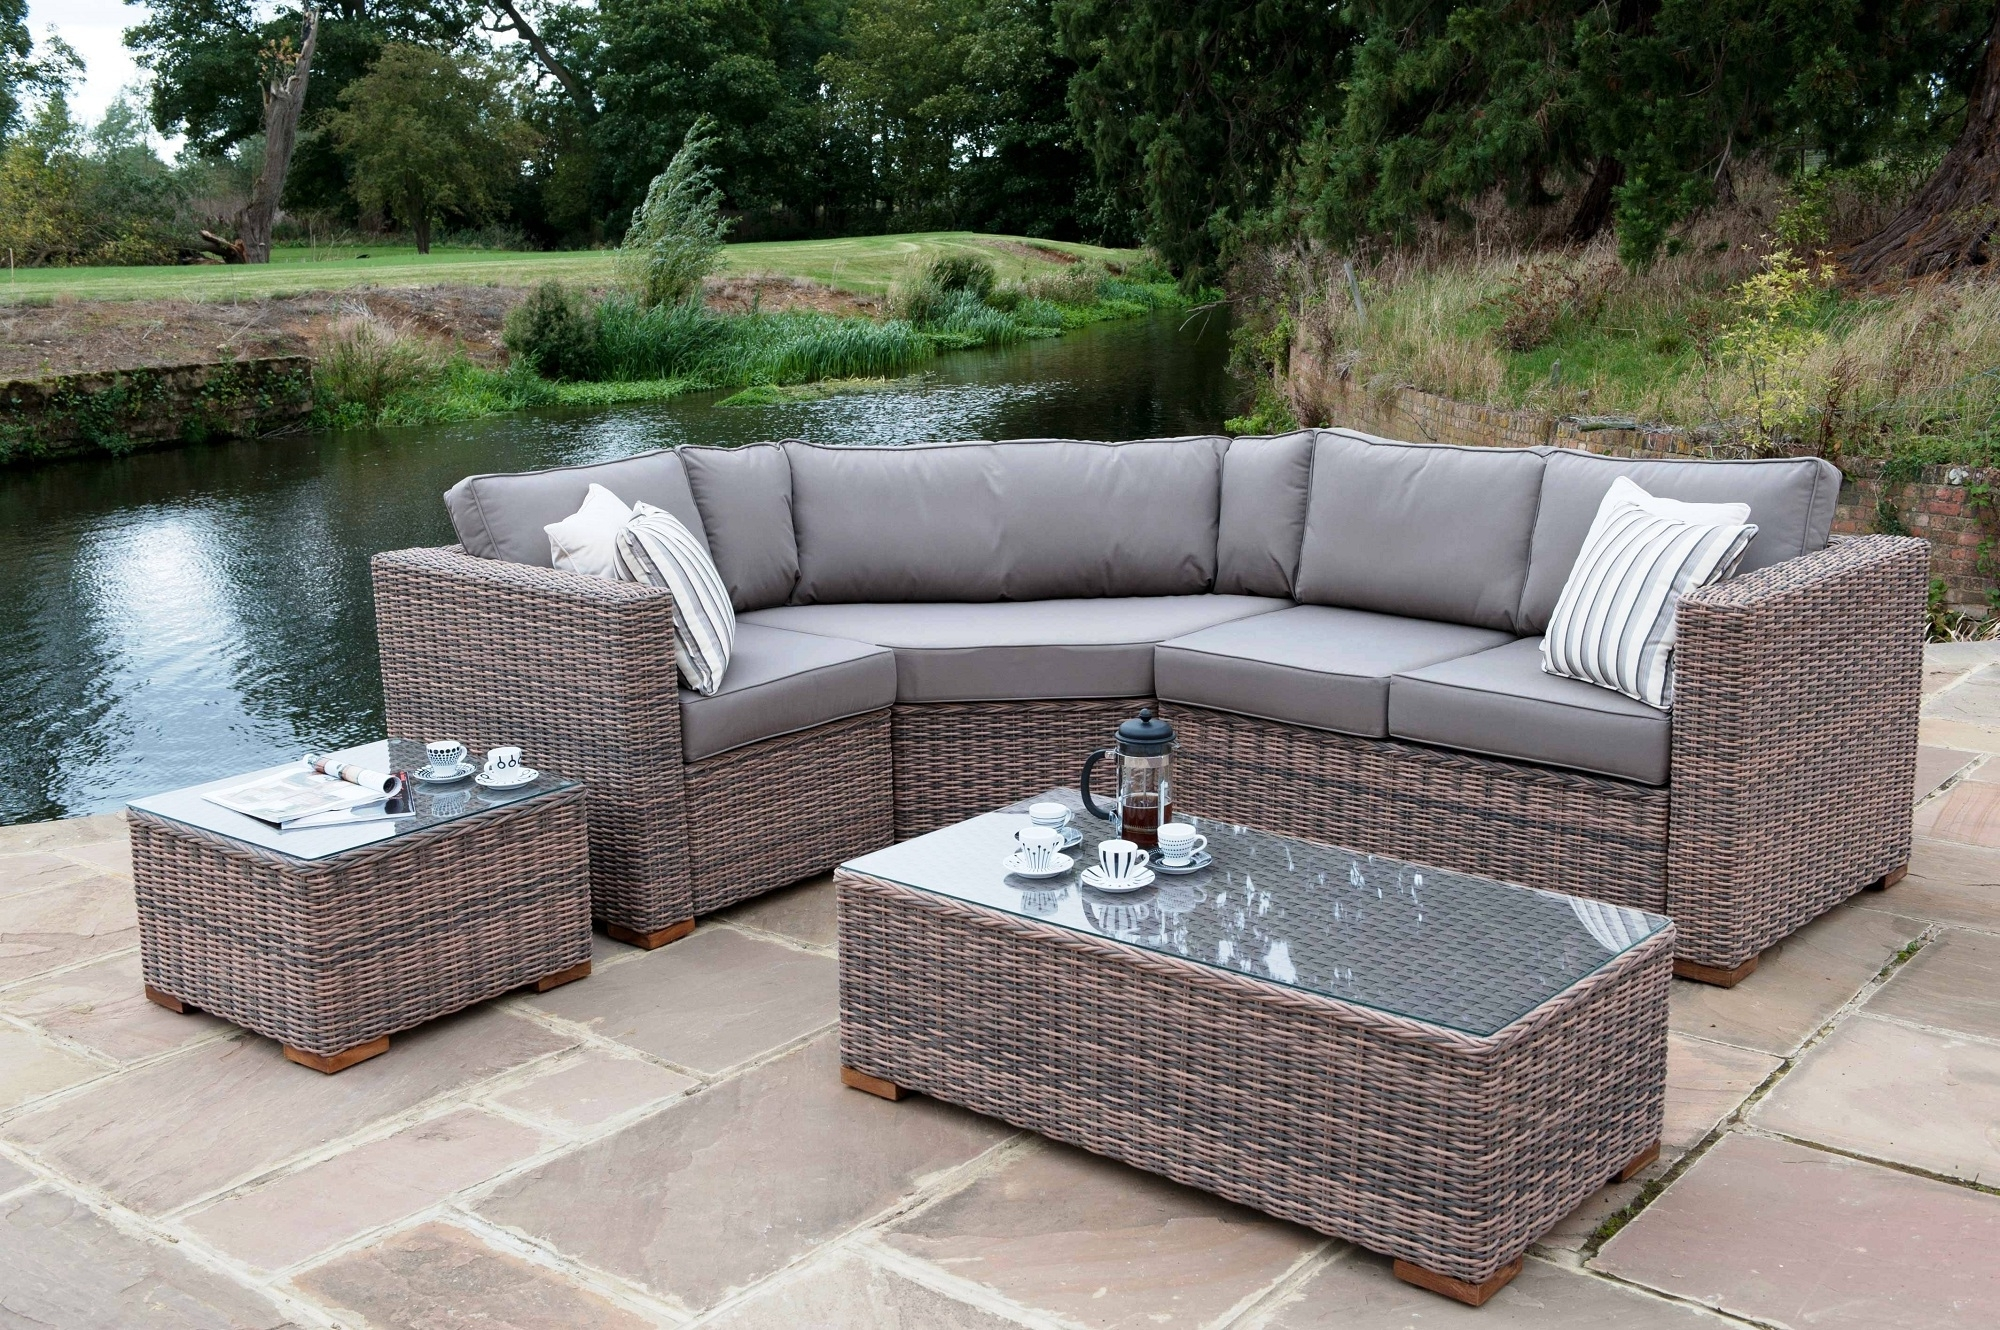 Nfm Patio Conversation Sets Within Most Up To Date Luxury Wicker Patio Furniture : Sathoud Decors – Repaint Wicker (View 16 of 20)